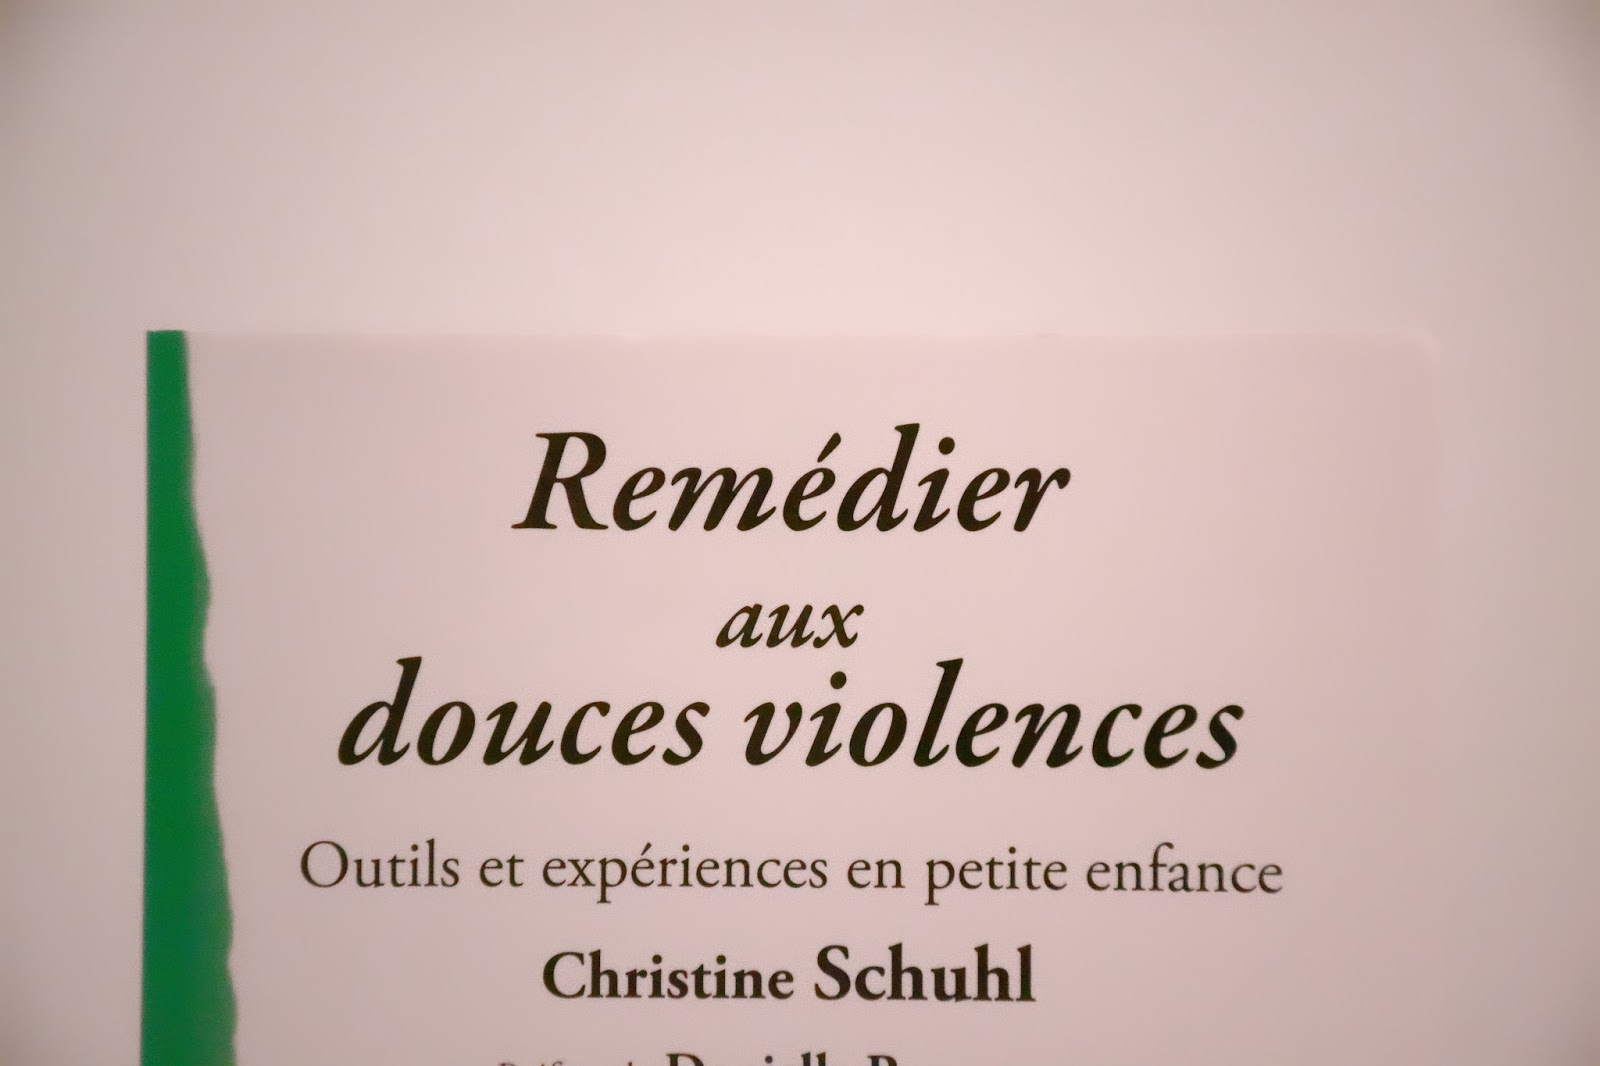 https://ldmailys.blogspot.com/2017/11/remedier-aux-douces-violences.html